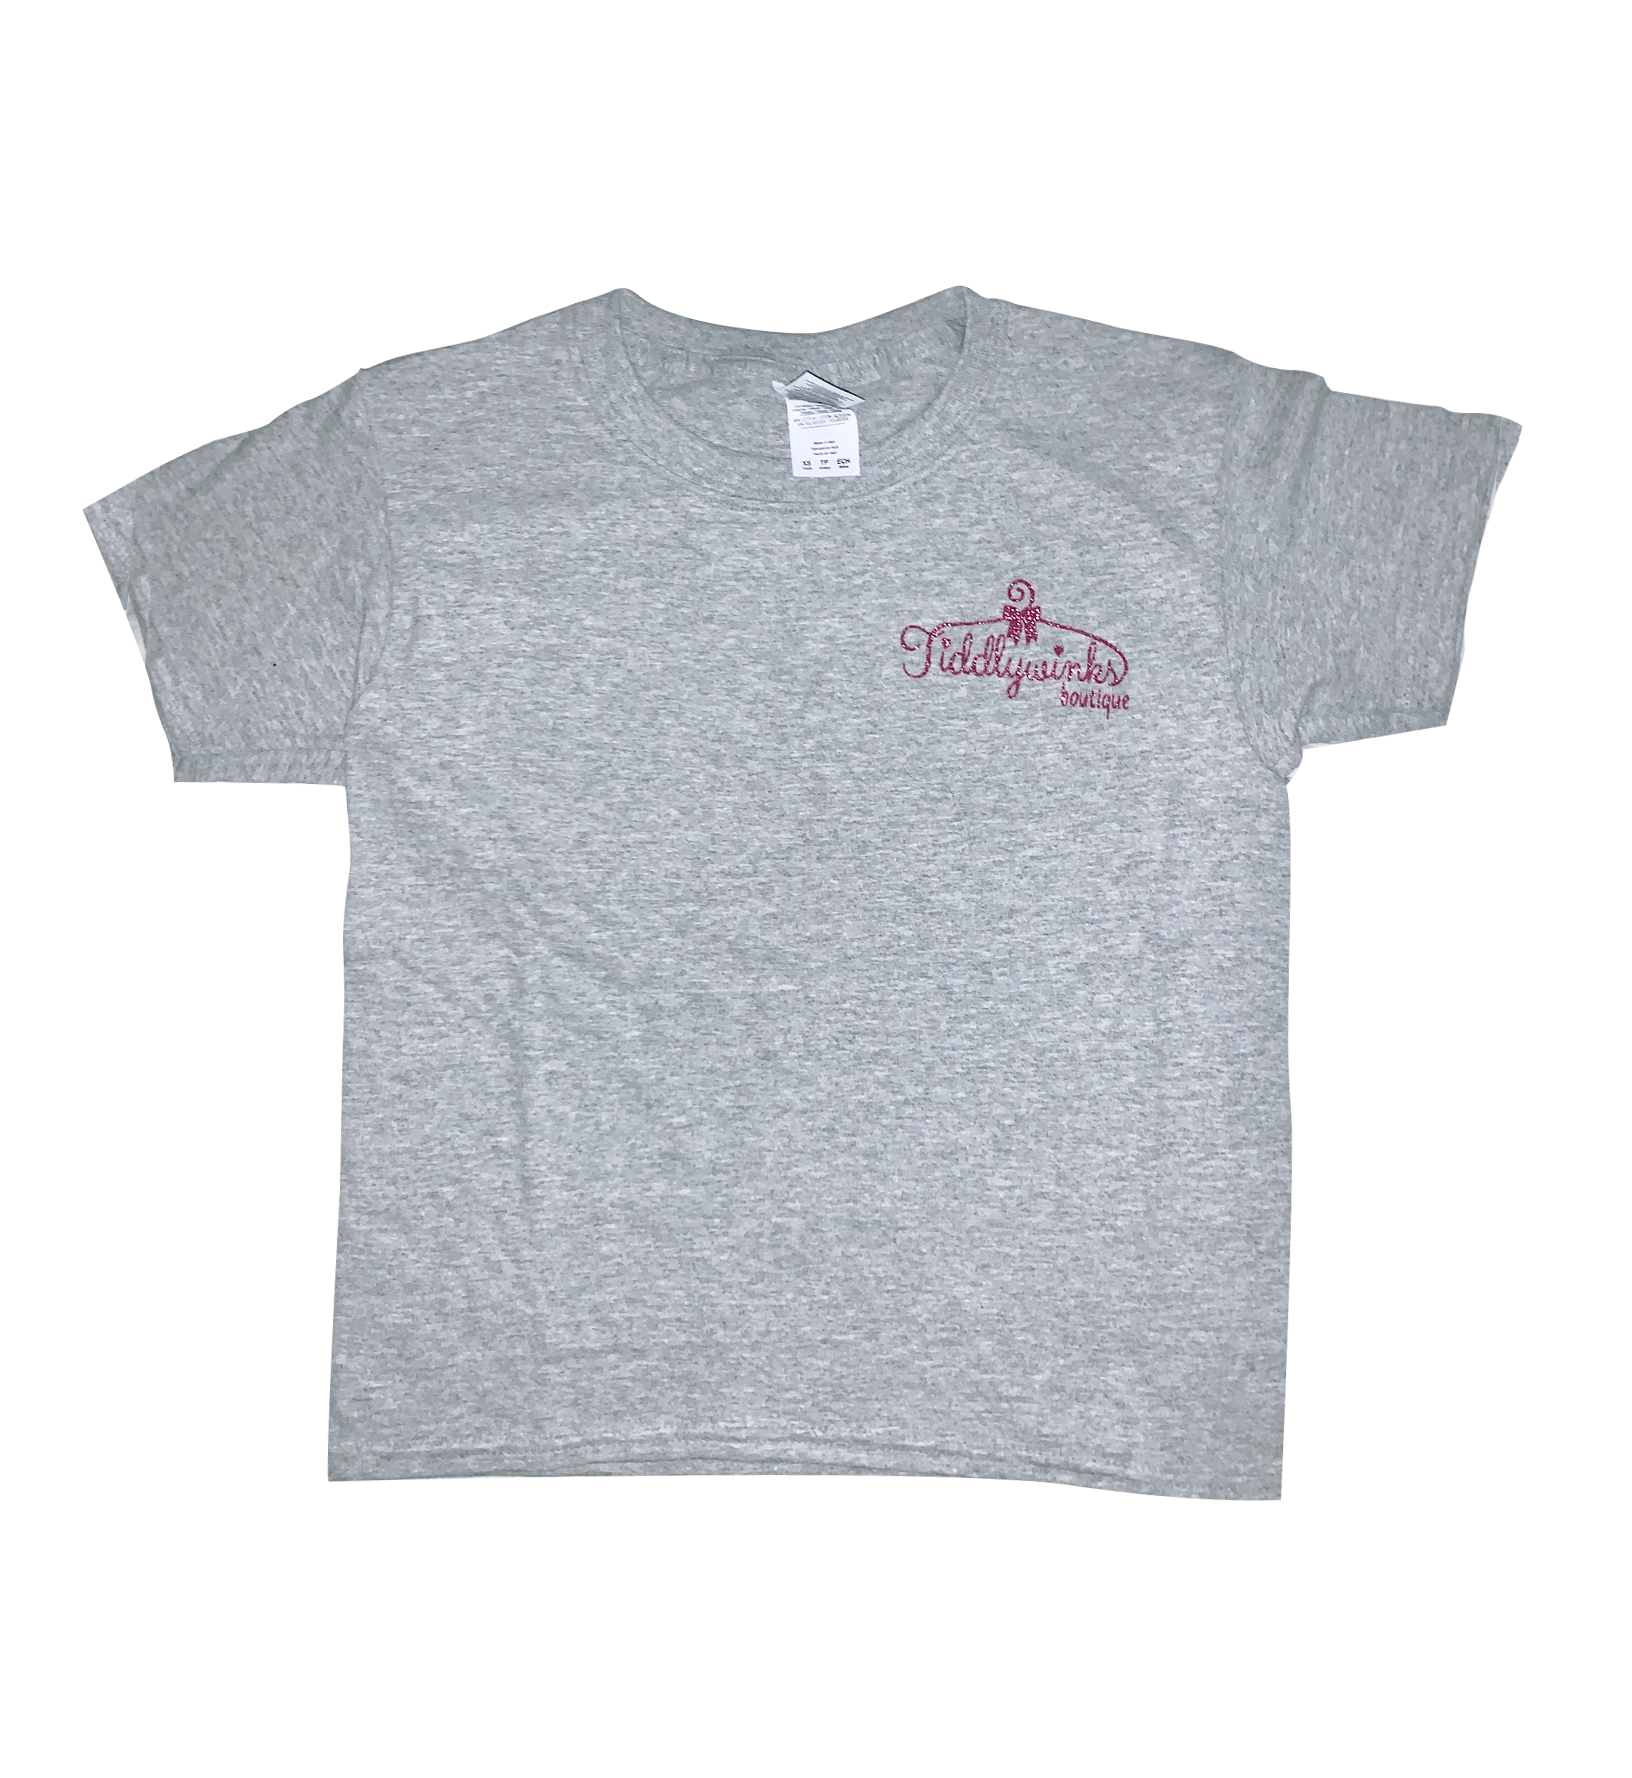 Tiddlywinks Logo T-shirt - Youth